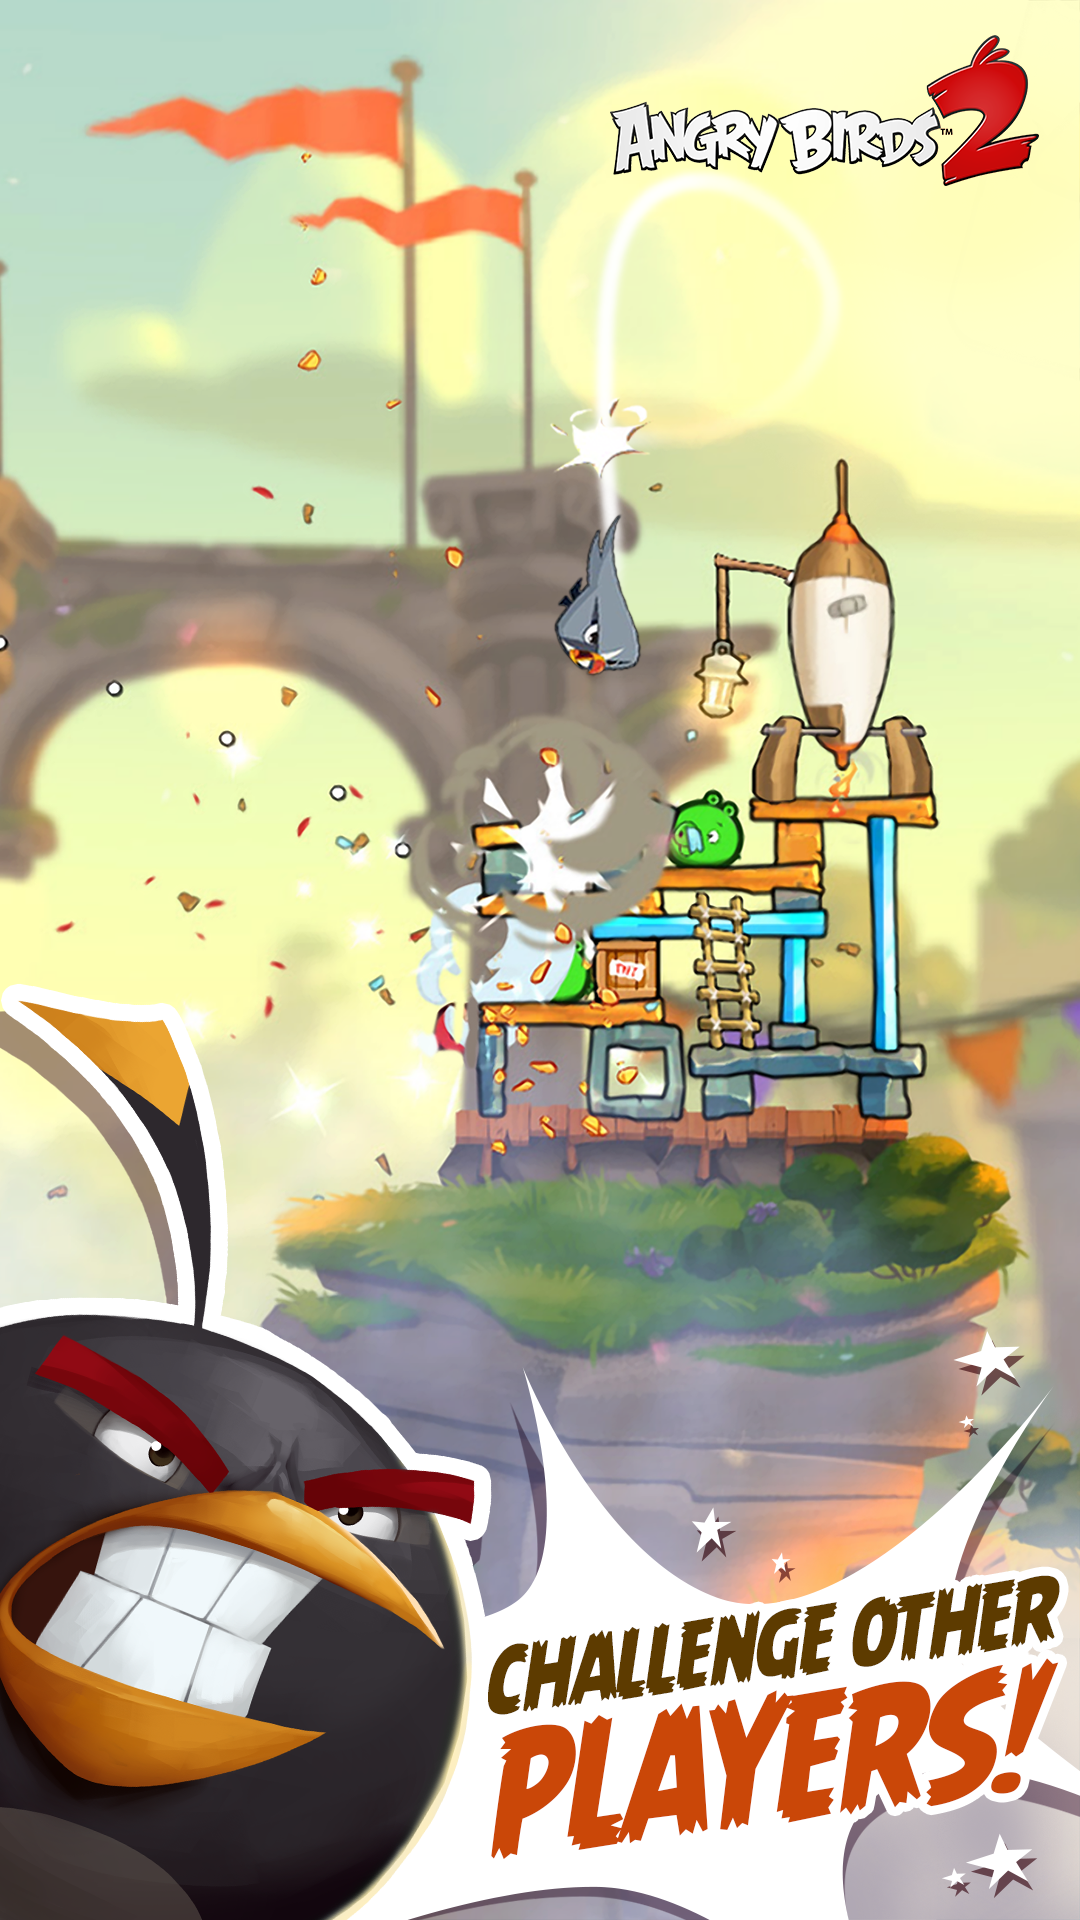 Angry Birds 2 screenshot #12